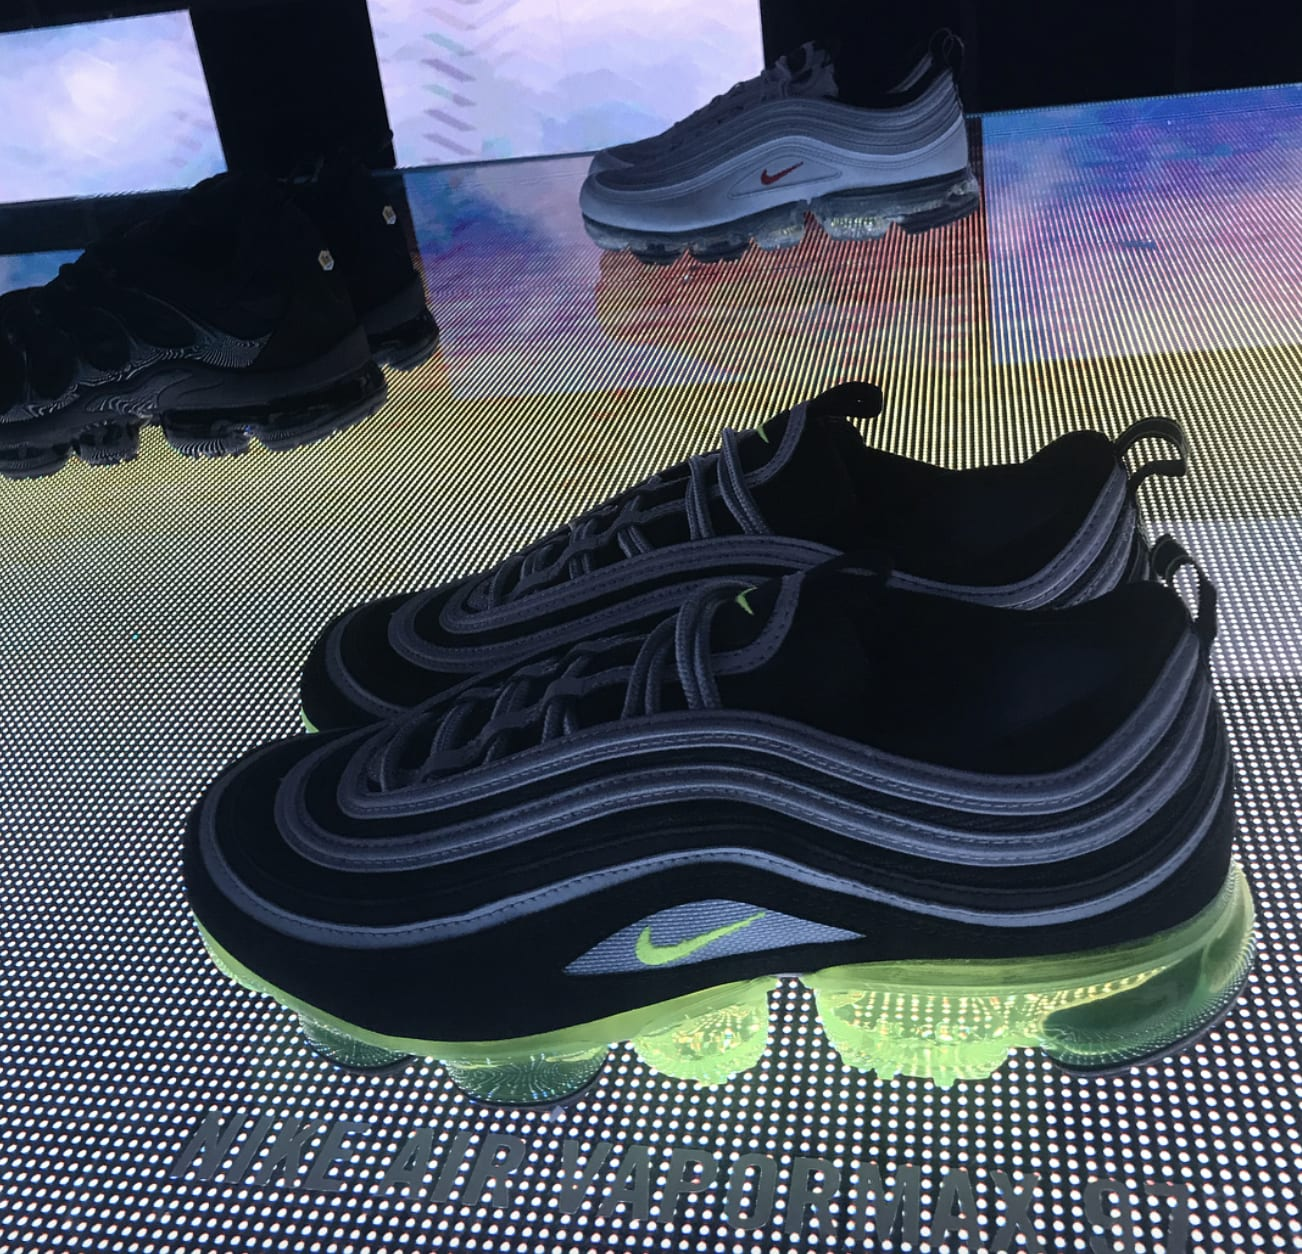 Nike Air Max Day Shanghai 2